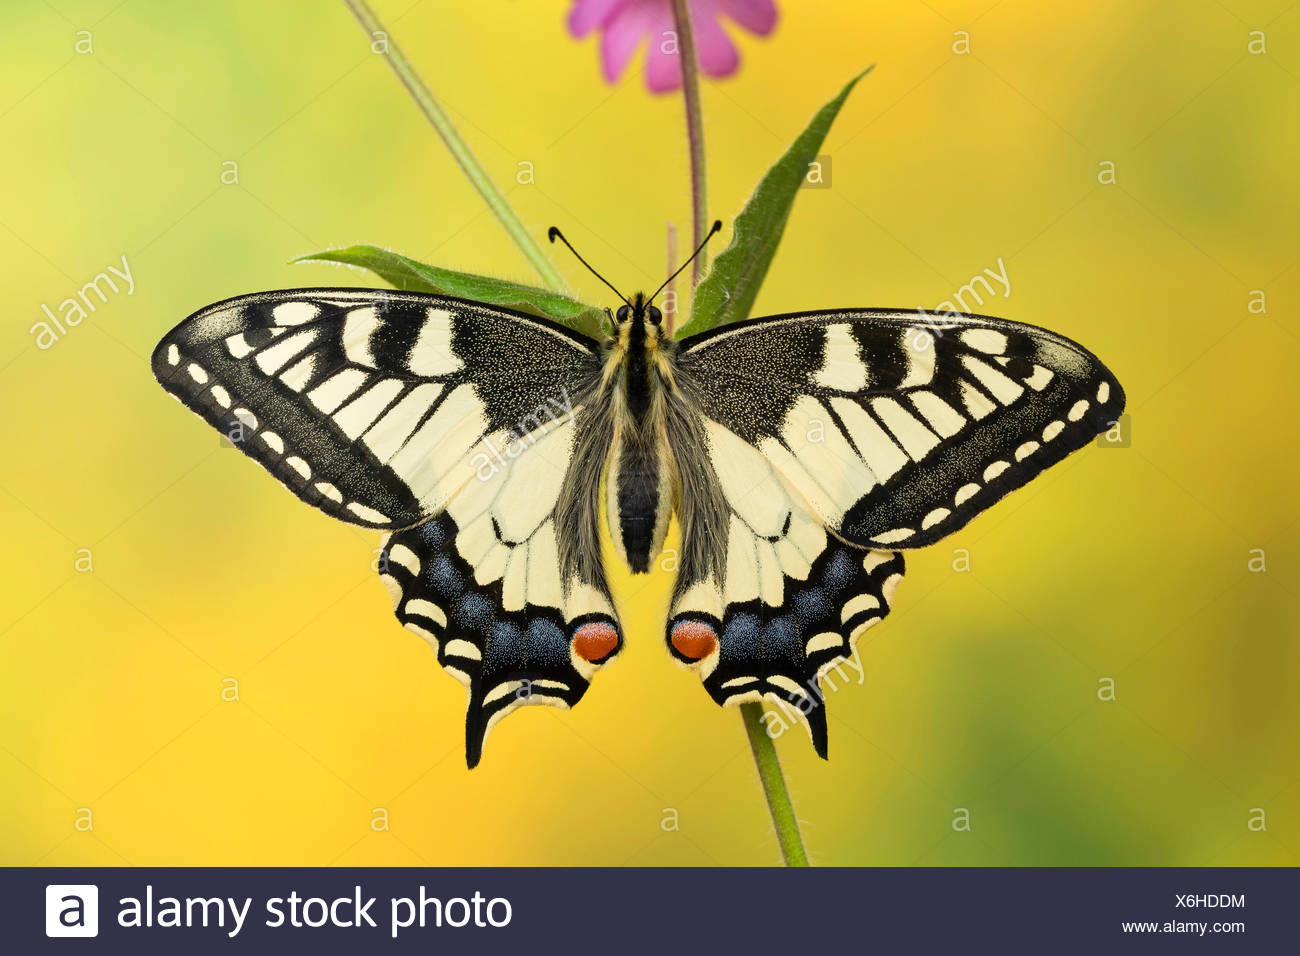 swallowtail (Papilio machaon), sits on a stem, Germany - Stock Image